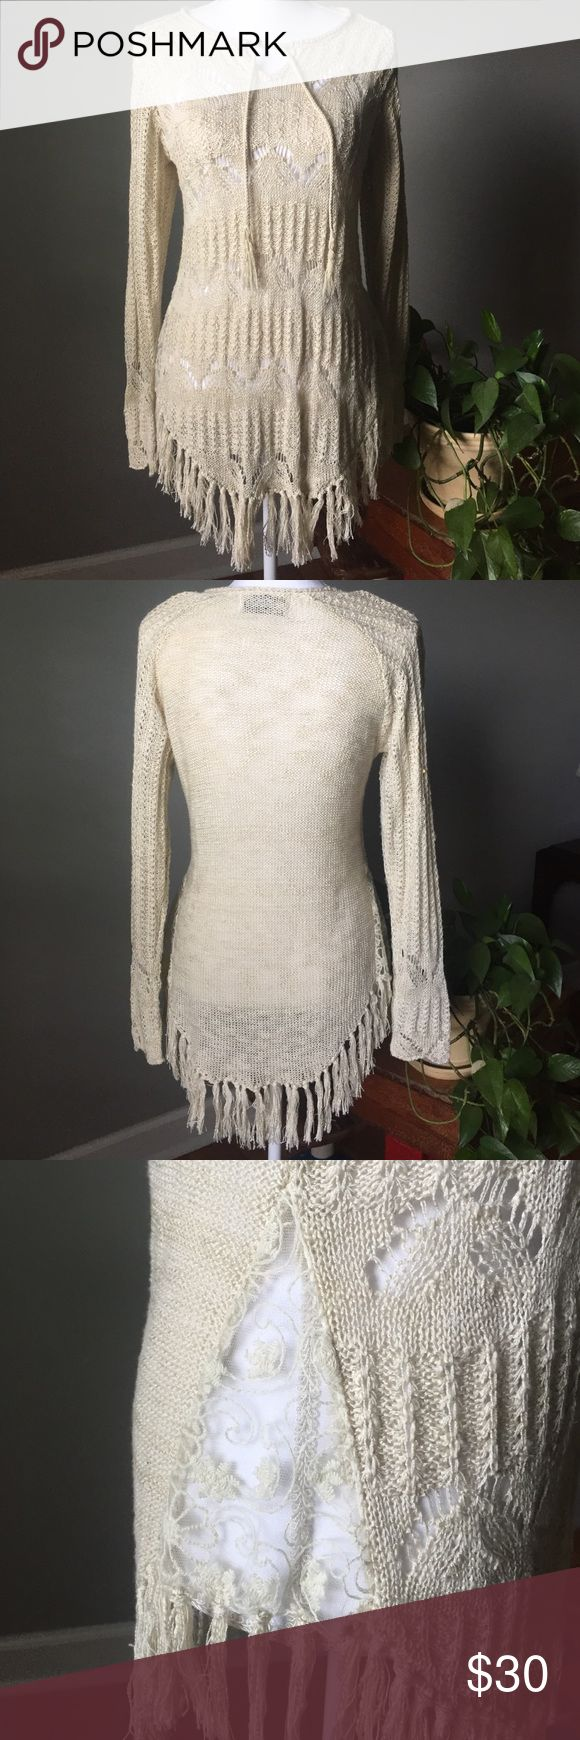 "Crochet Top Really cute cream colored crochet long sleeve top. Has draw strings at top to toe. Has slit on sides with a sheer material sewed into slits. Fringe on bottom. Never worn so no stains or tears or snags. No fringe is missing . 17"" bust. 29"" in length. There is some stretch to top. There is not a size tag in top but I would say it's a medium Tops Blouses"